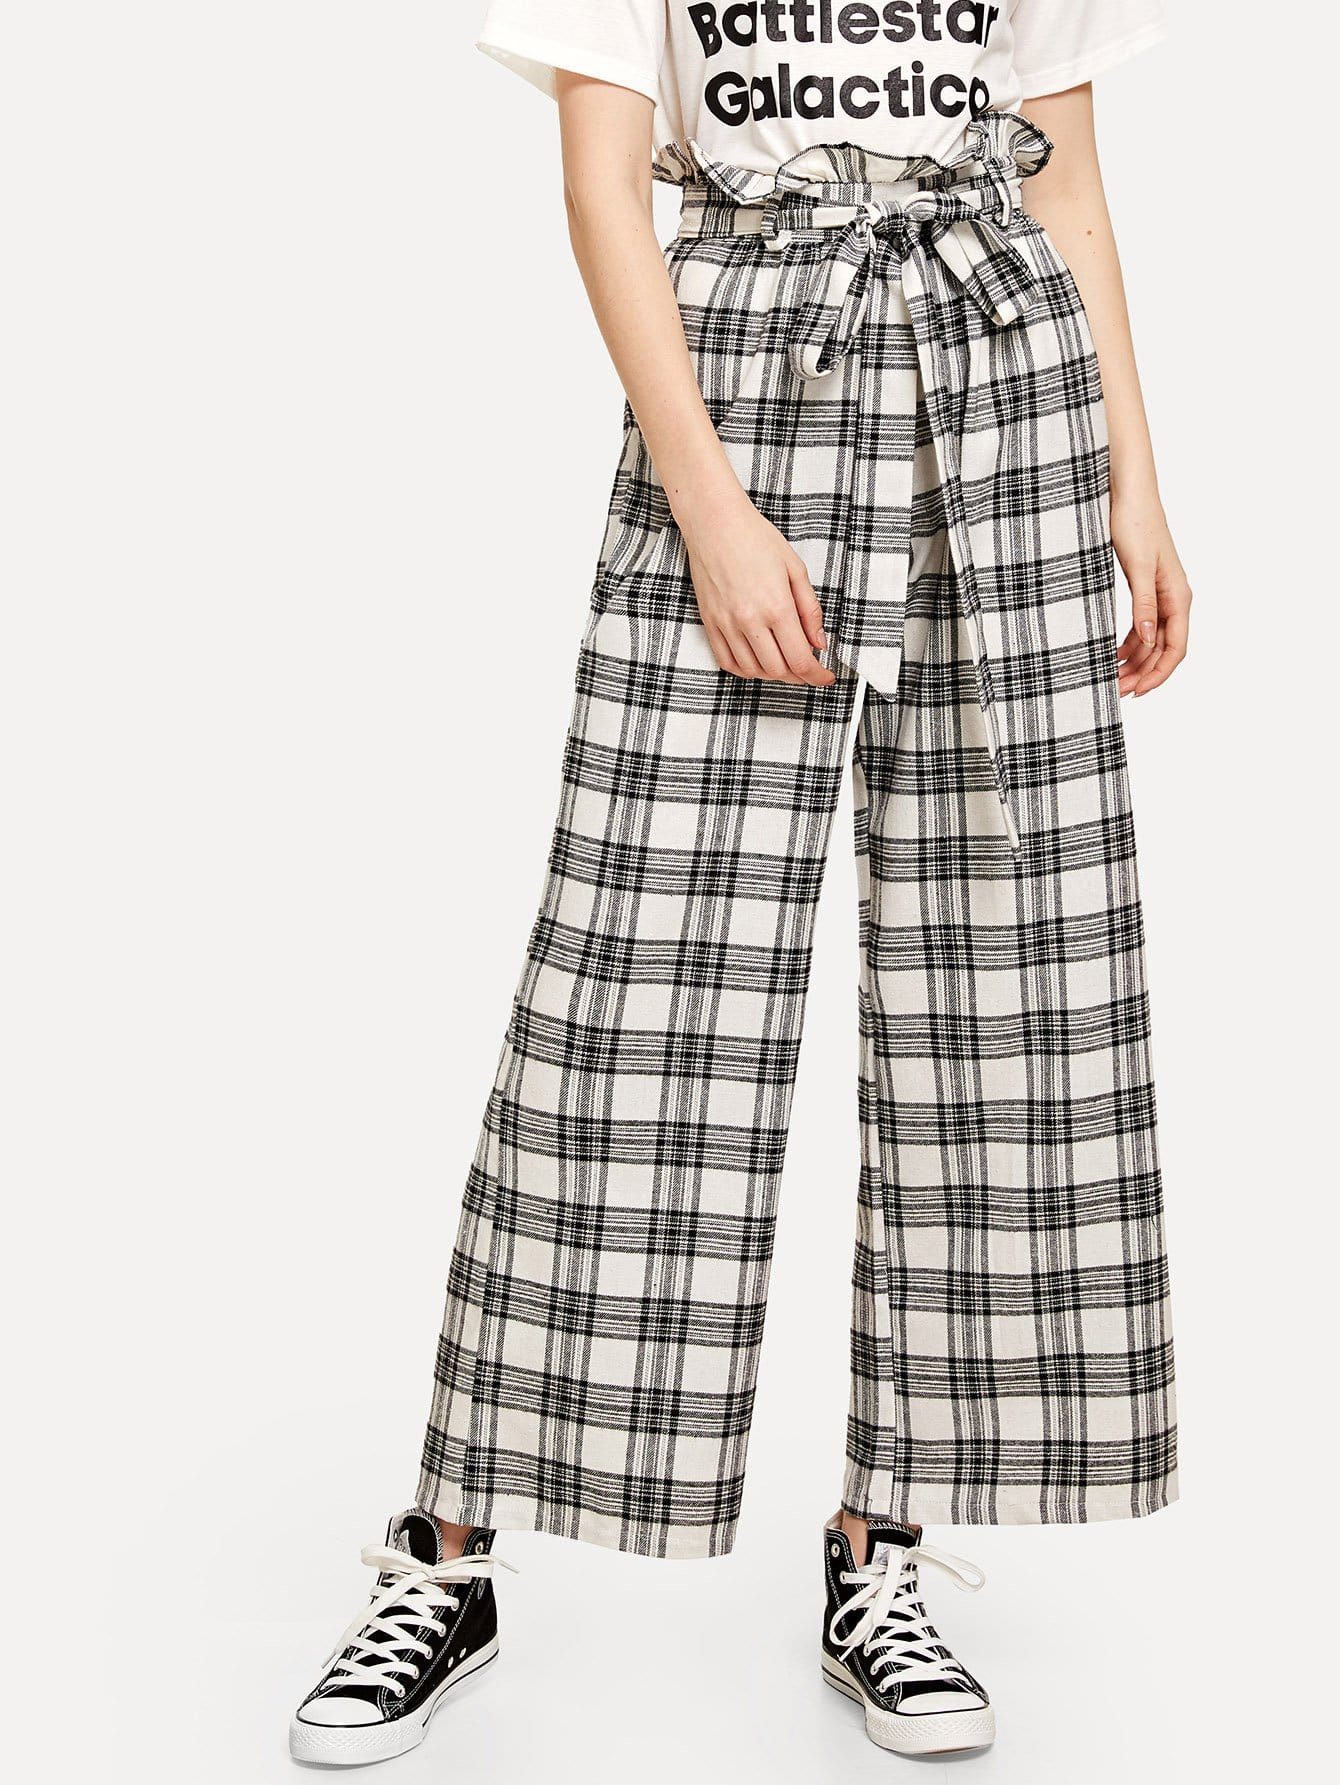 Frill Trim Self Tie Waist Checked Pants self tie waist frill trim pleated pants